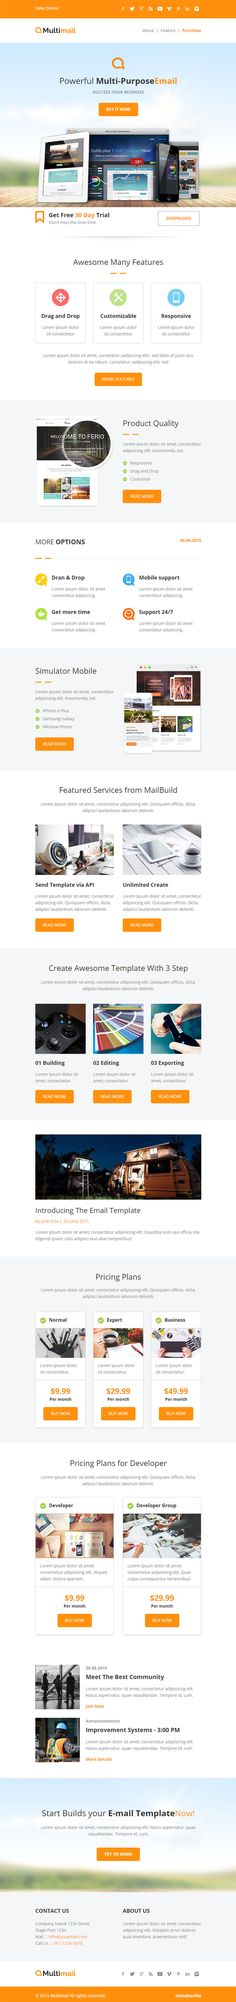 Multimail is Premium full Responsive HTML5 #EmailTemplate. Drag and Drop. #Mailchimp. Unlimited Colors. WYSIWYG editor. Test free demo at: http://www.responsivemiracle.com/multimail-premium-responsive-email-set-mailbuild-online/